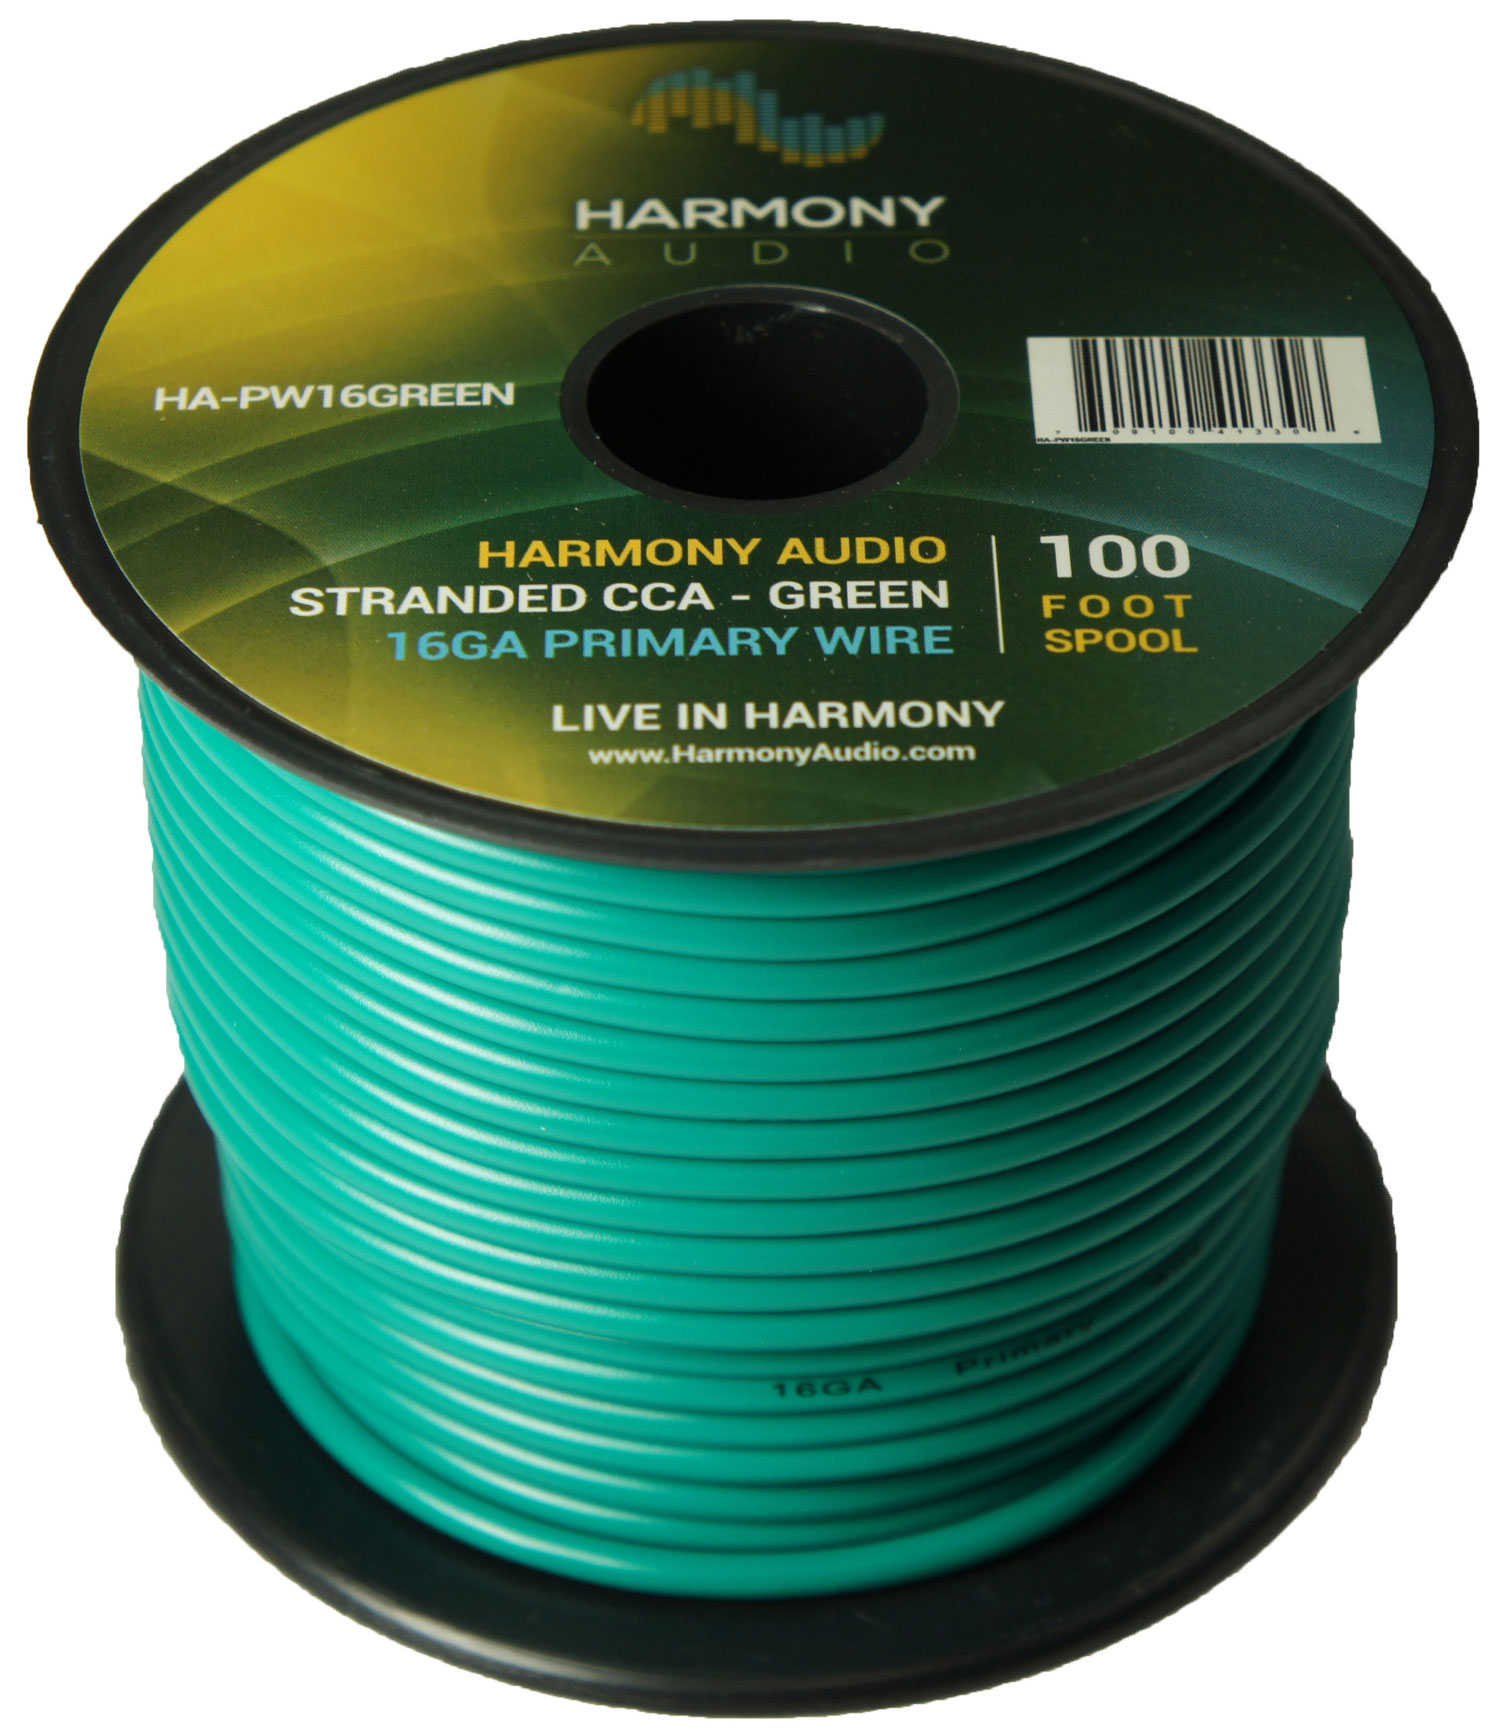 Harmony Audio HA-PW16GREEN Primary Single Conductor 16 Gauge Green Power or Ground Wire Roll 100 Feet Cable for Car Audio / Trailer / Model Train / Remote